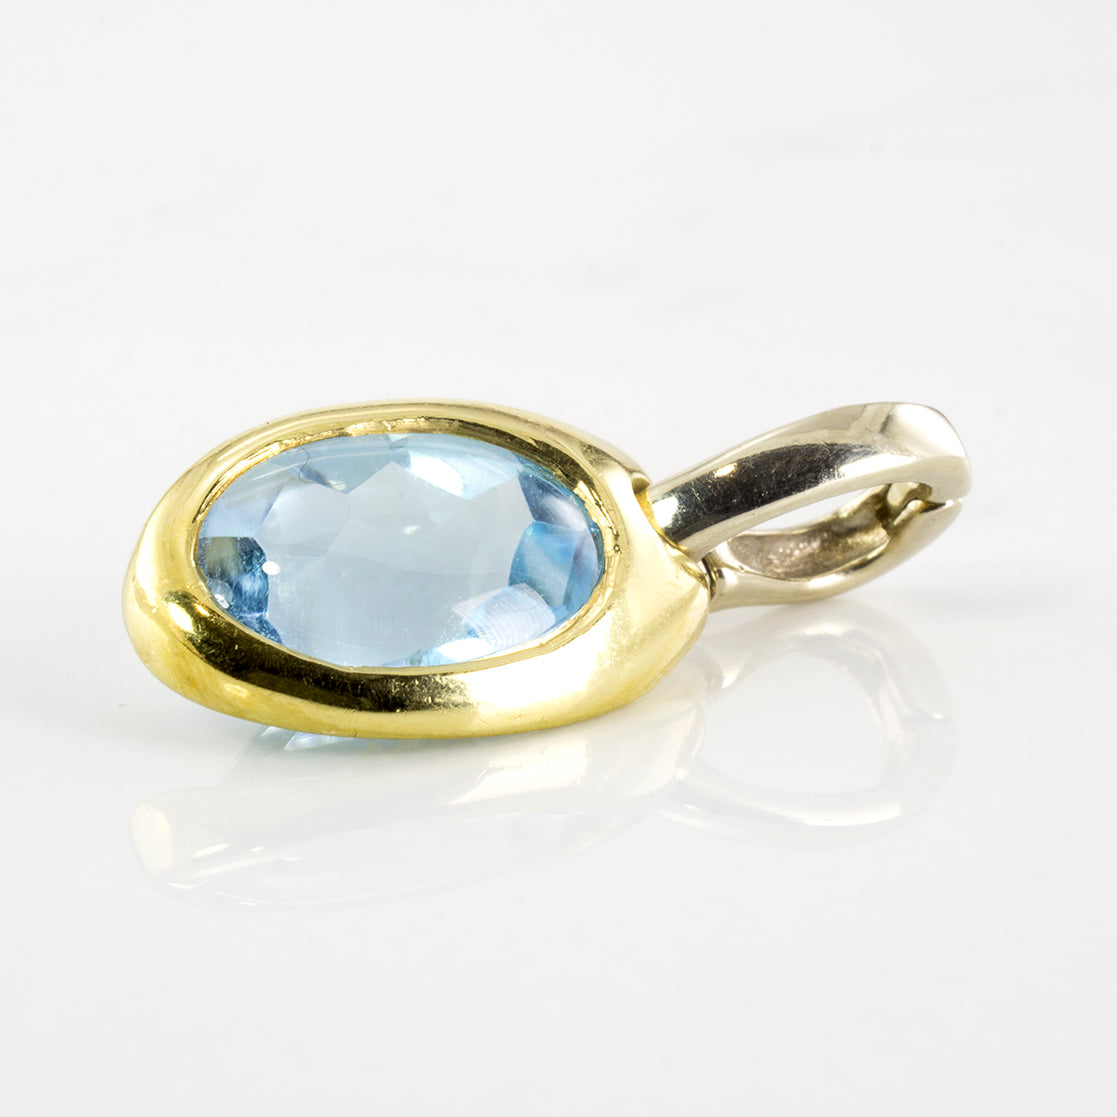 'Birks' Blue Topaz Two Tone Pendant | 4.00 ct Blue Topaz |